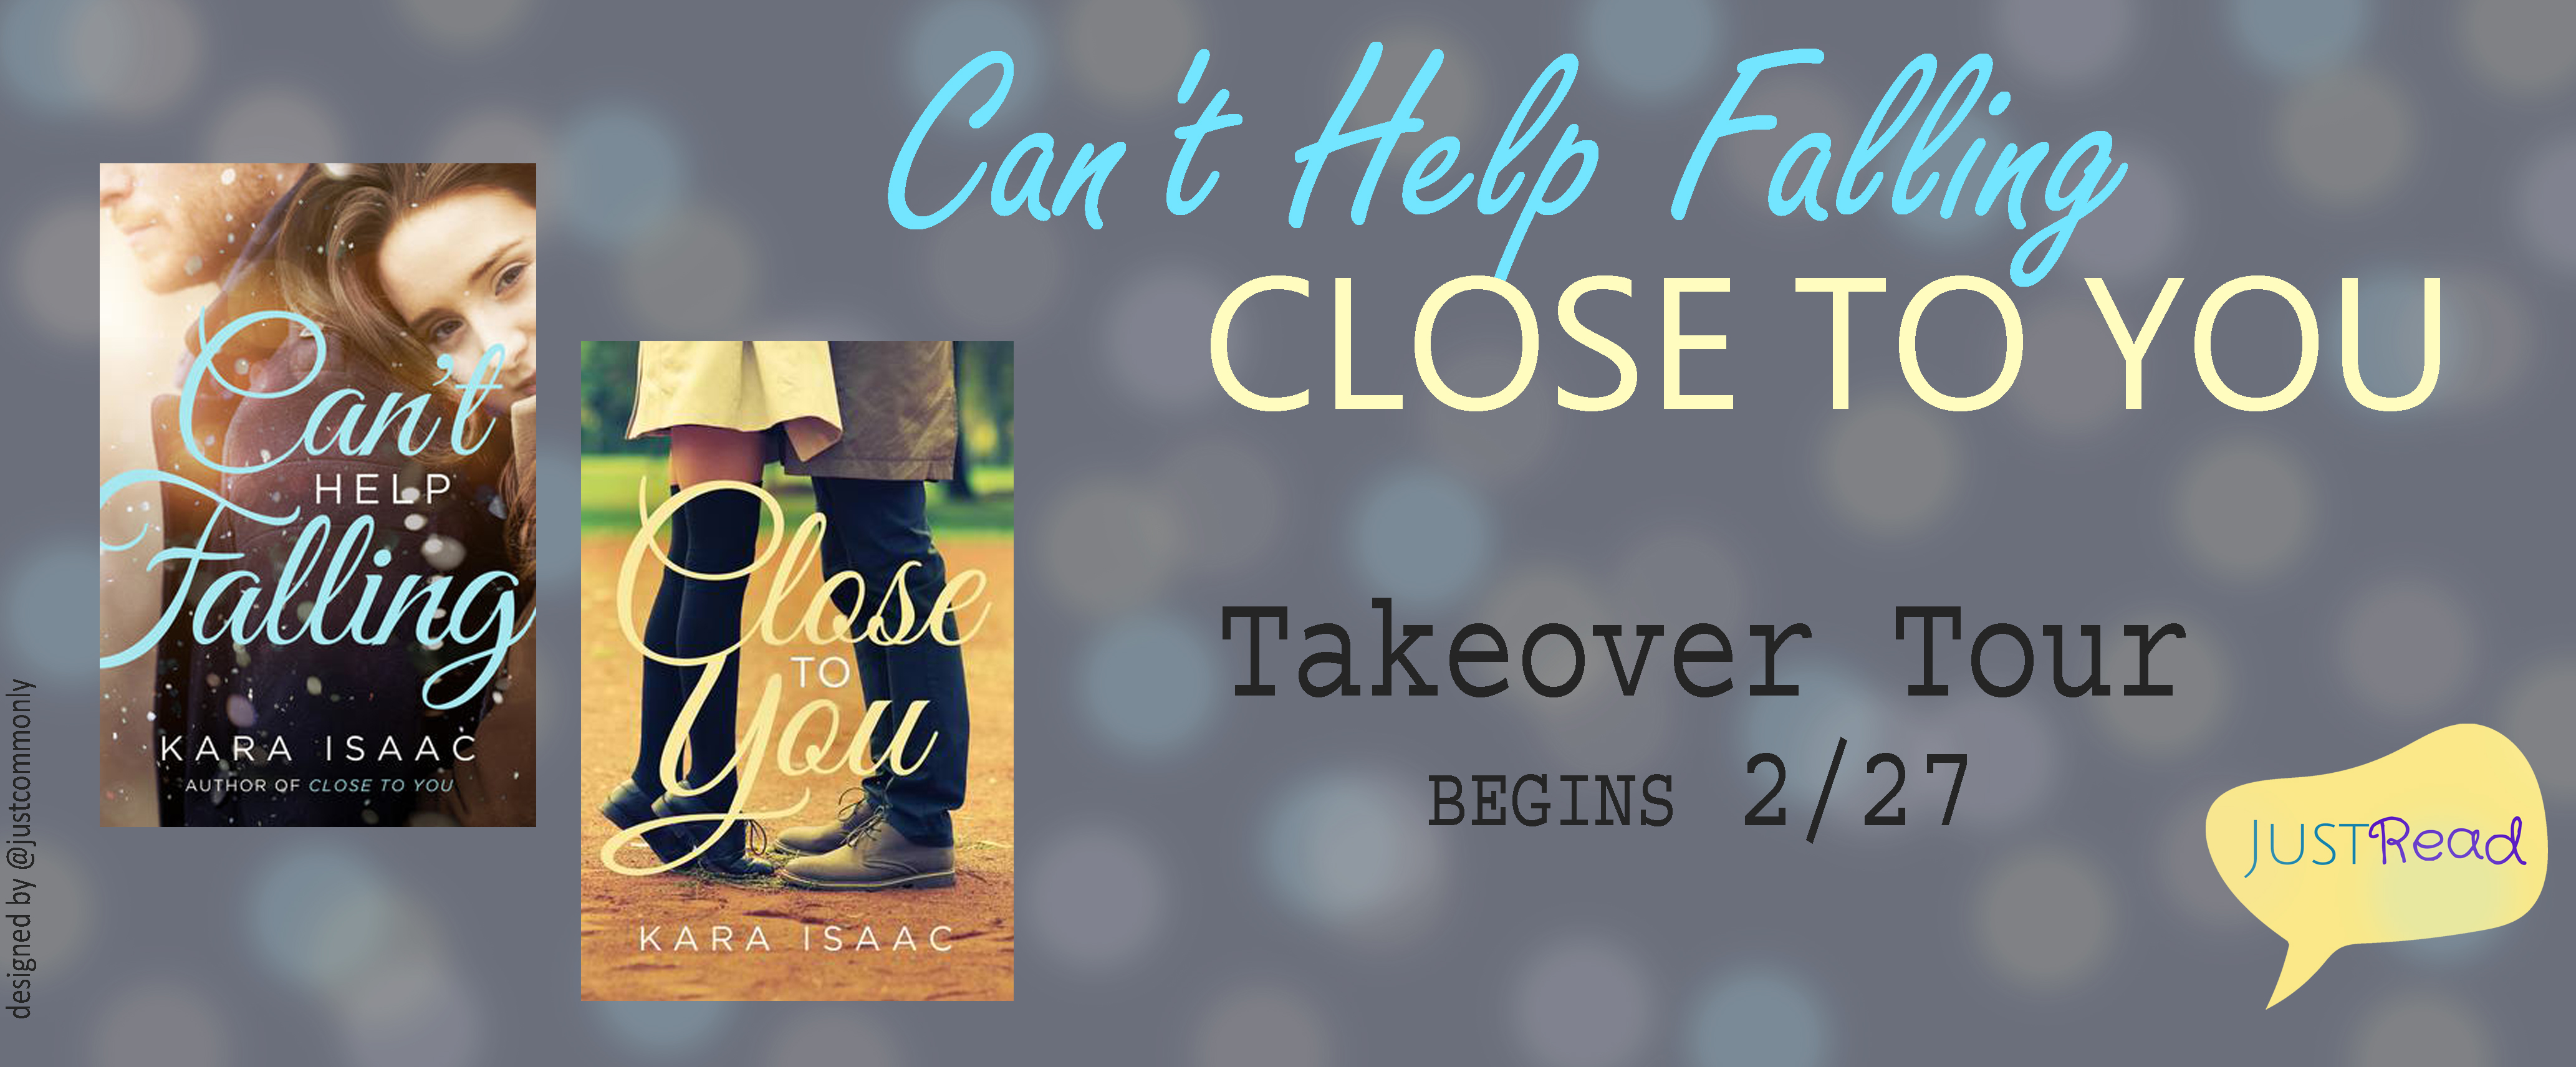 Can't Help Falling Close to You Banner